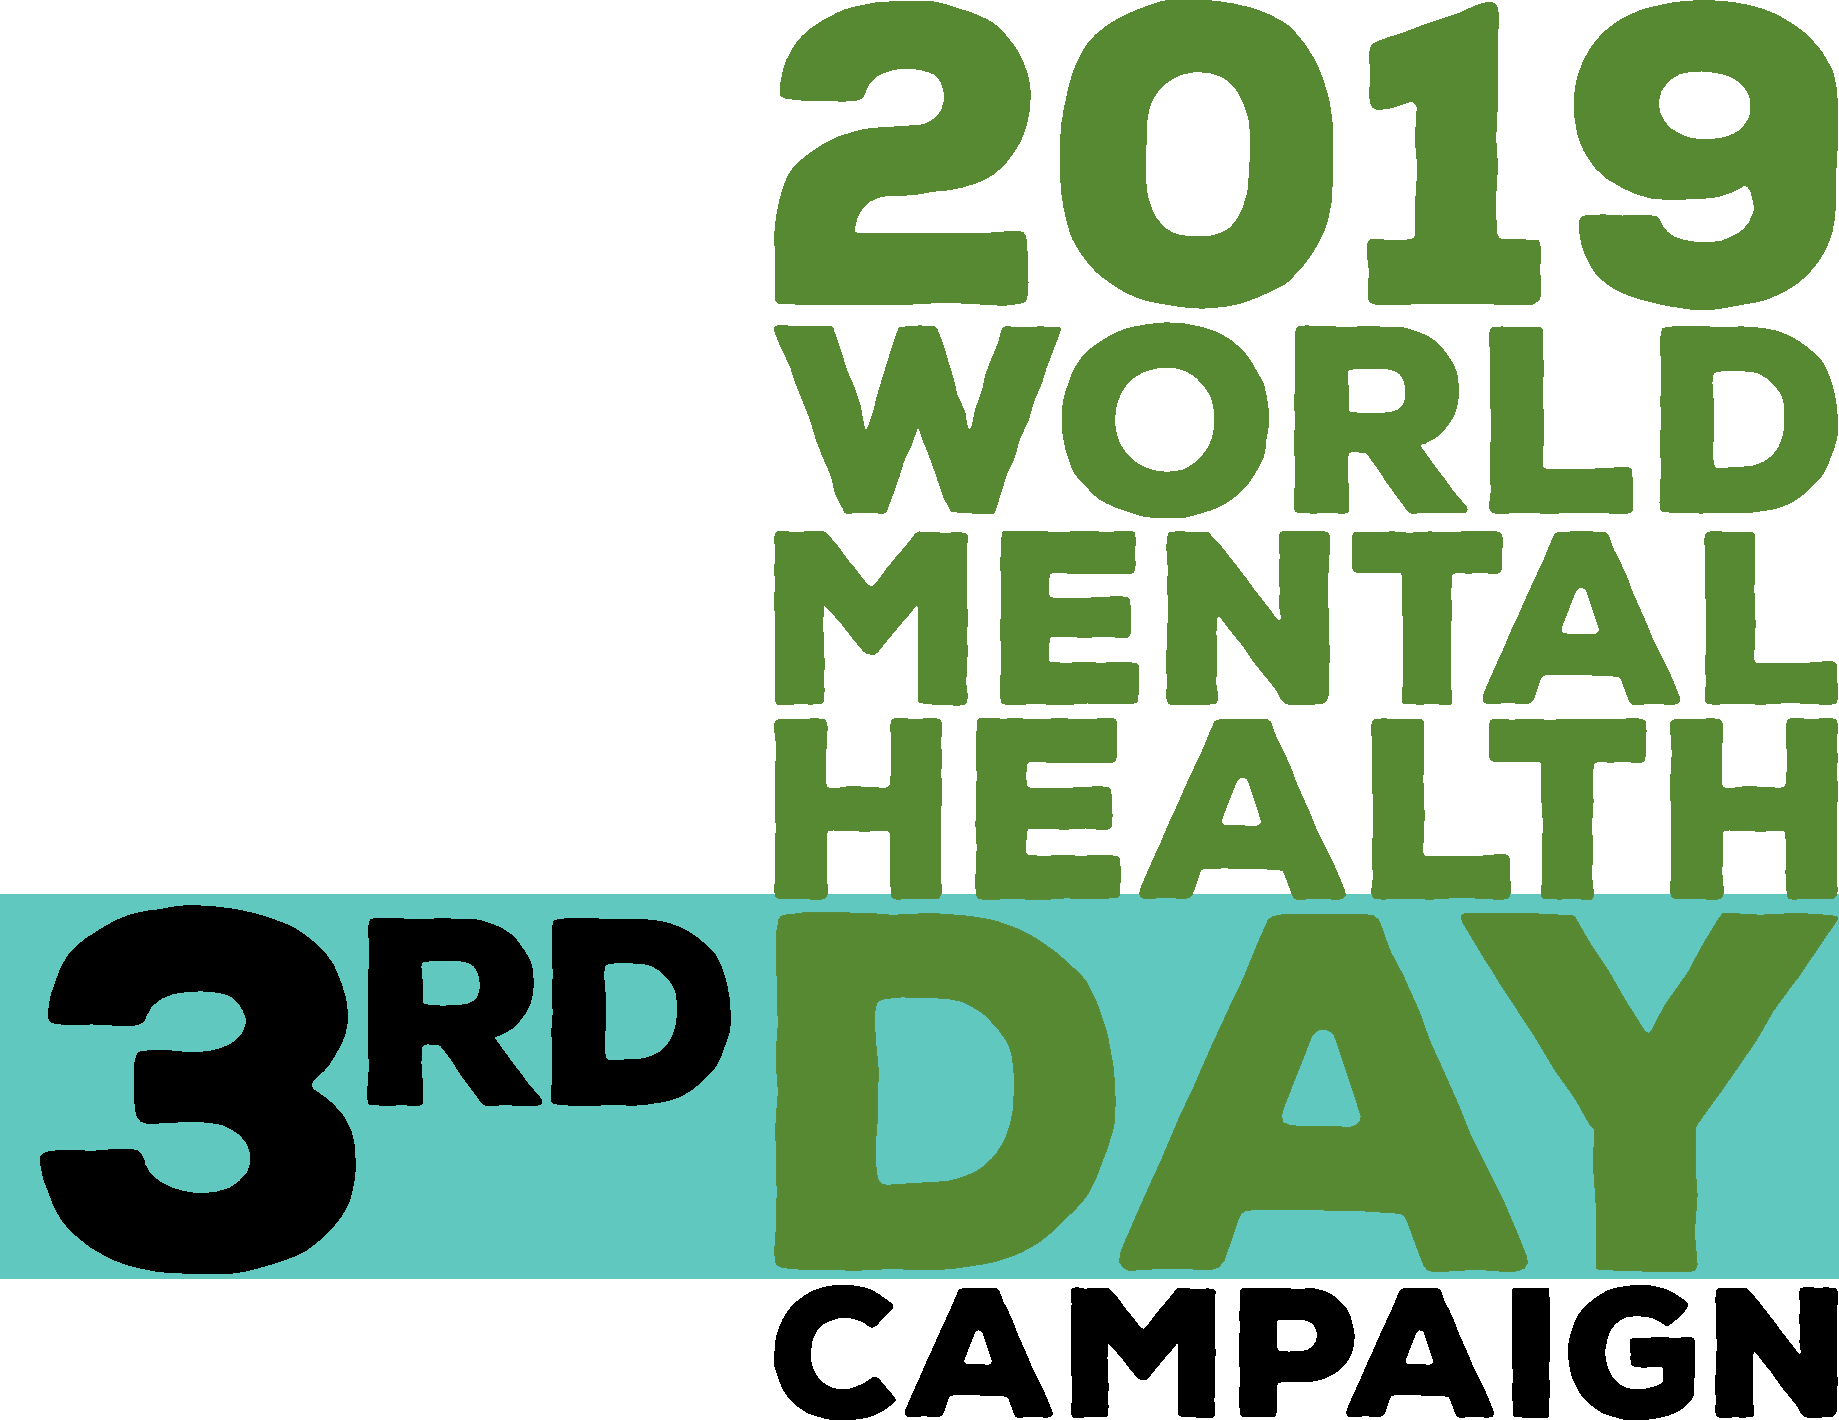 2019 world mental health day campaign logo 3rd day